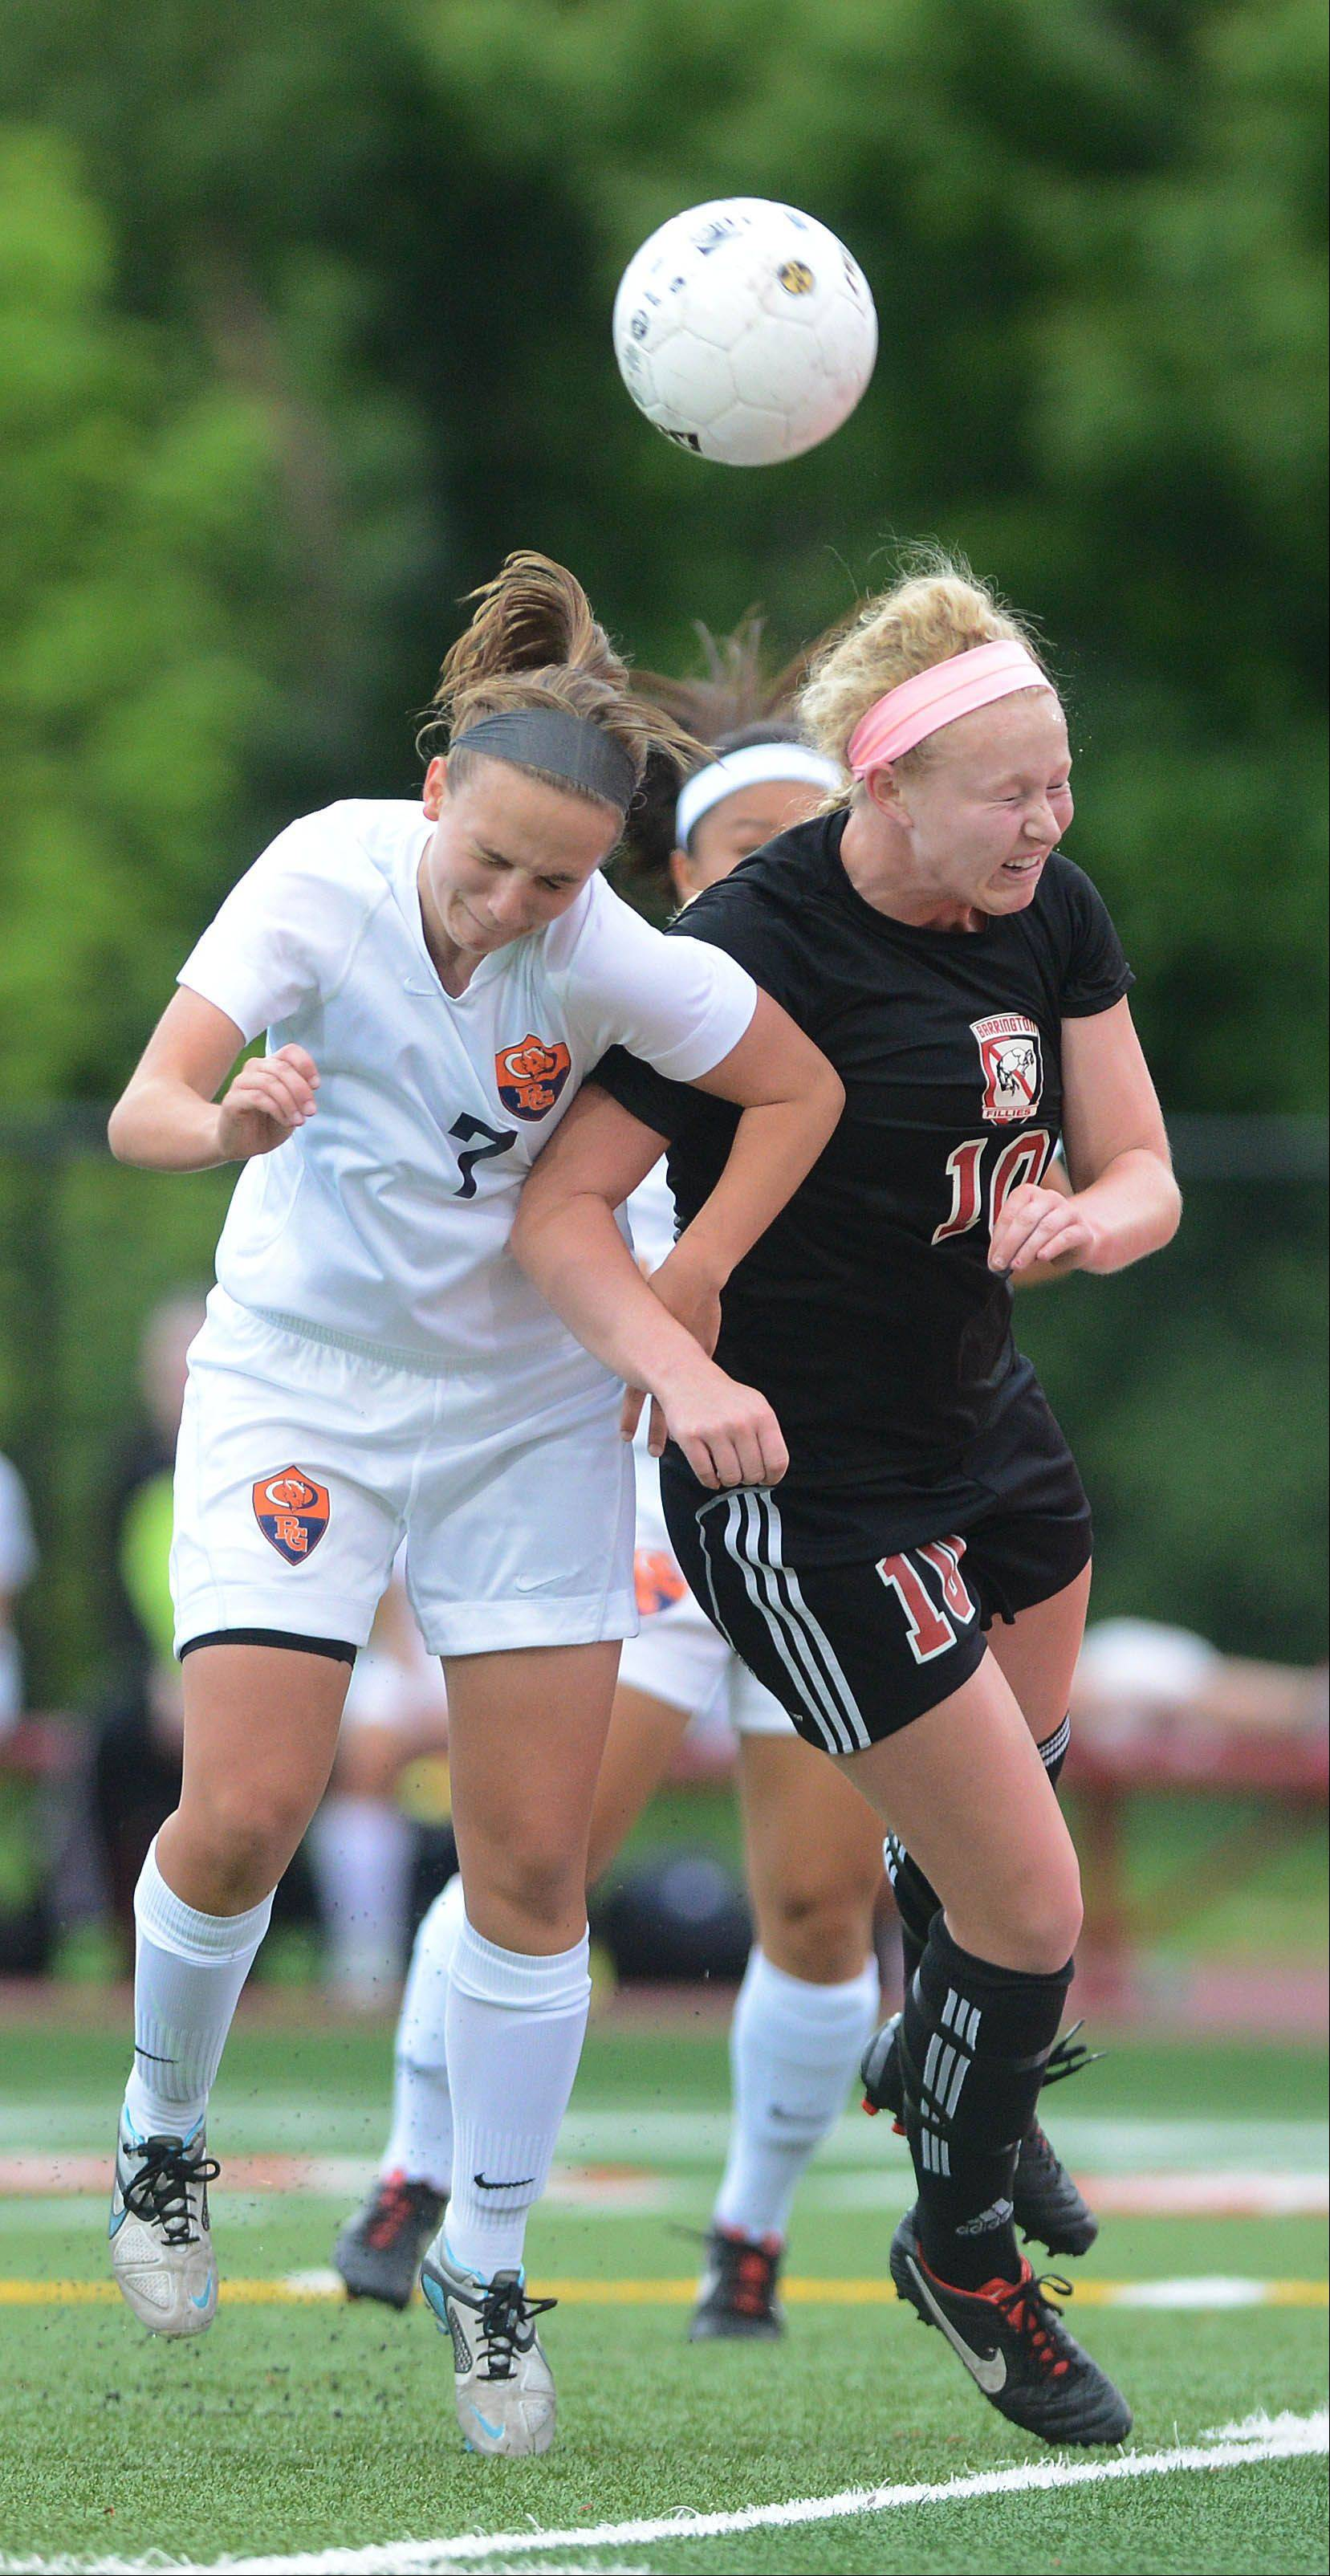 Jessica Kovach of Buffalo Grove, left, and Molly Pfeiffer of Barrington, fight for the ball during the Class 3A third-place match game Saturday.